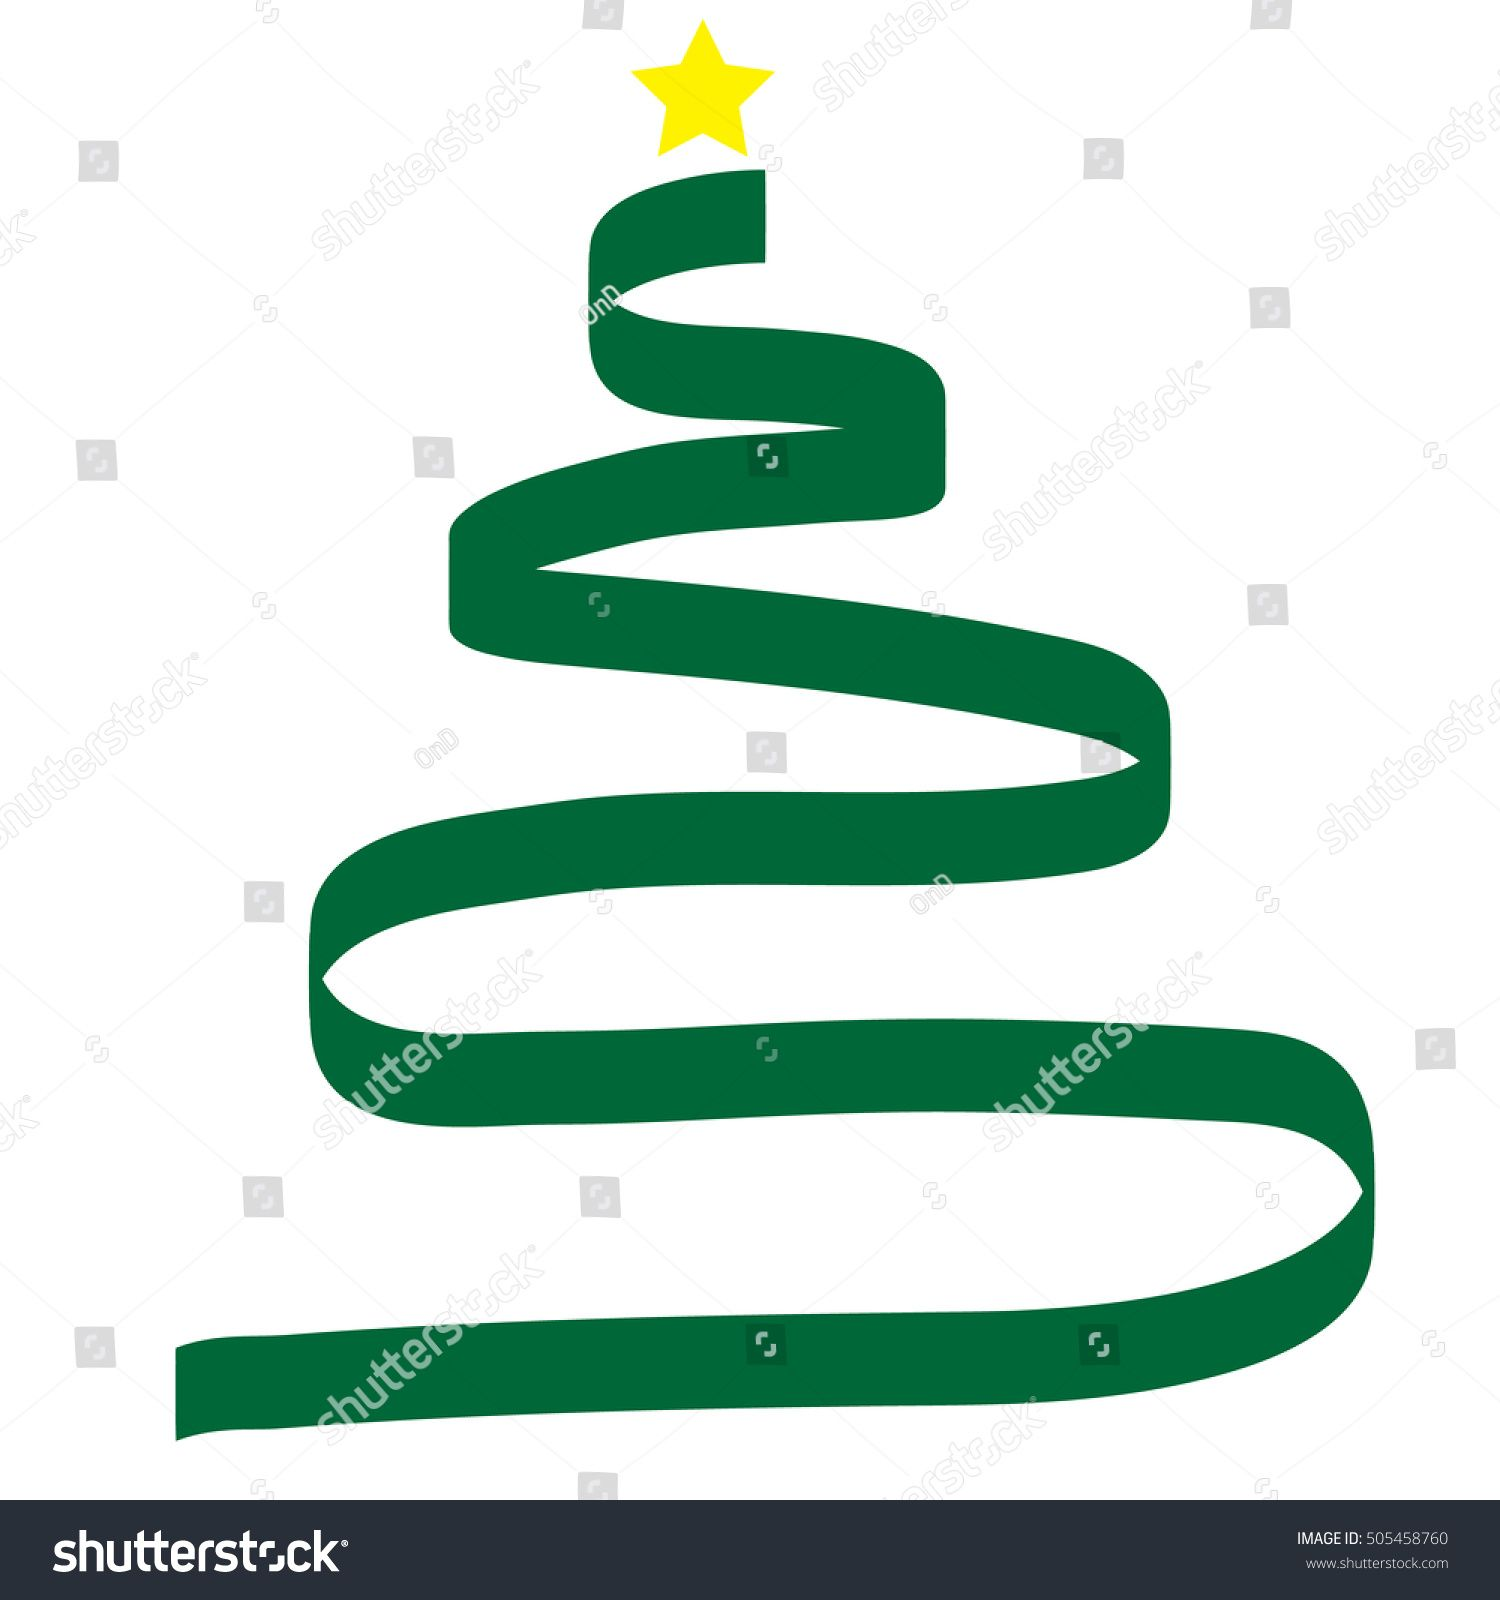 Stylized Green Ribbon Christmas Tree With Yellow Star Vector Illustration Ad Ad Ribbon Christmas Stylized G In 2020 Christmas Tree Yellow Green Ribbon Stylized